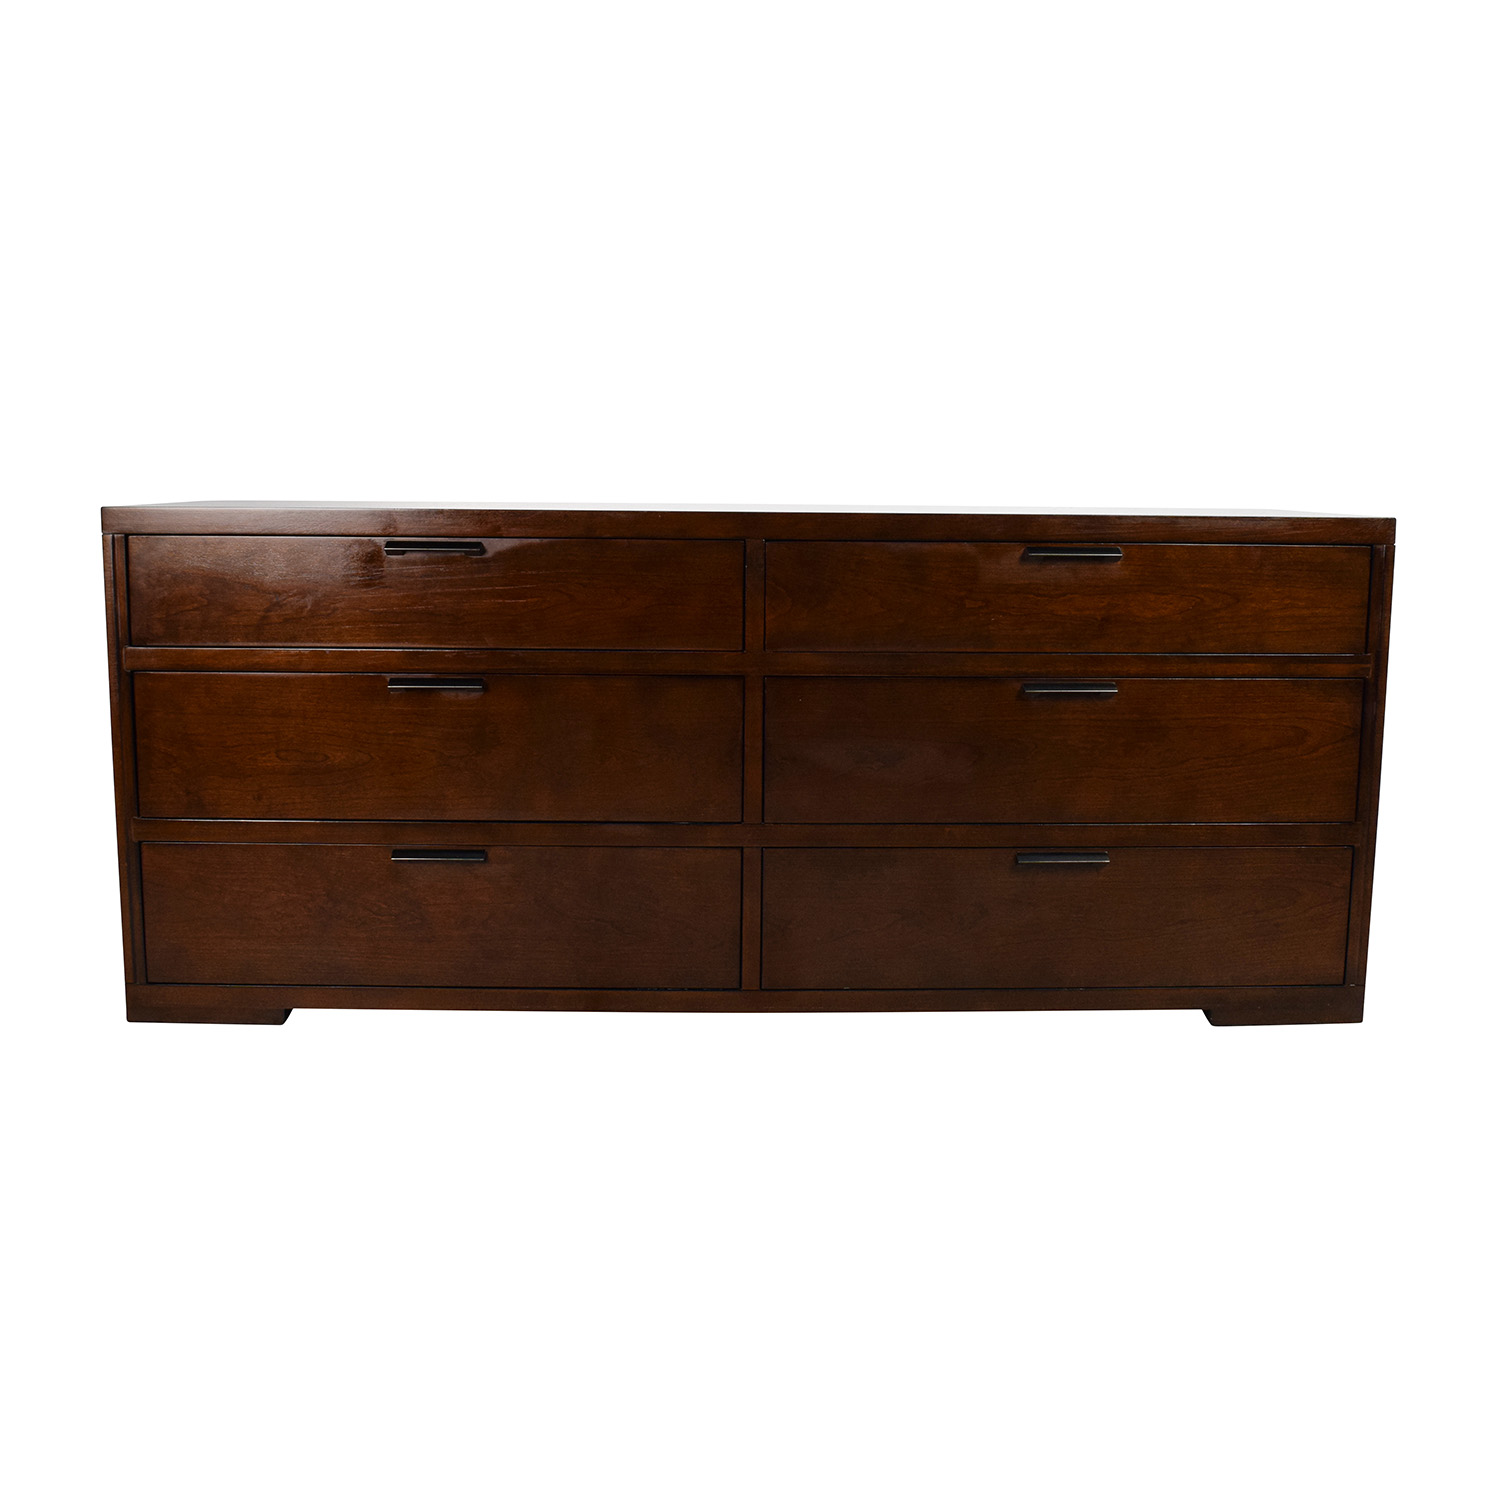 buy Crate & Barrel Asher 6-Drawer Dresser Crate and Barrel Dressers